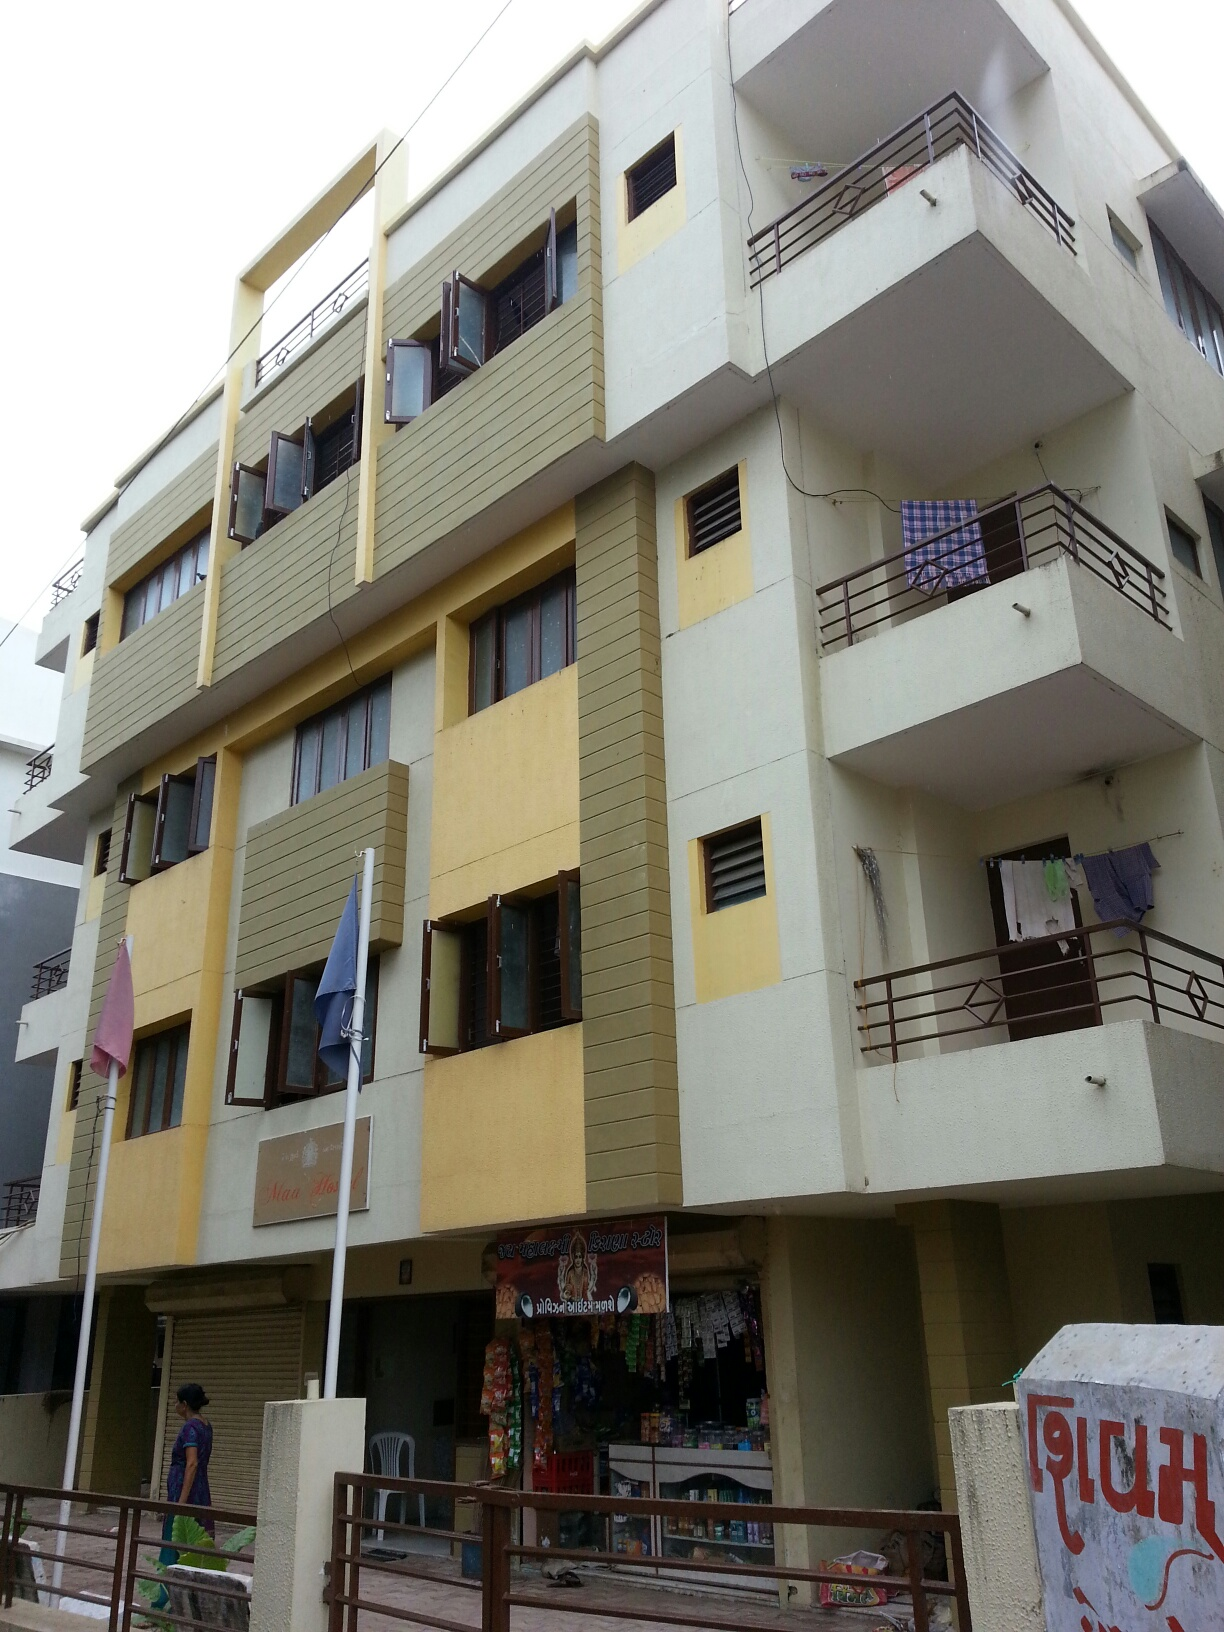 Operational hostel for sale in Vidhyanagar with 90 students enrolled